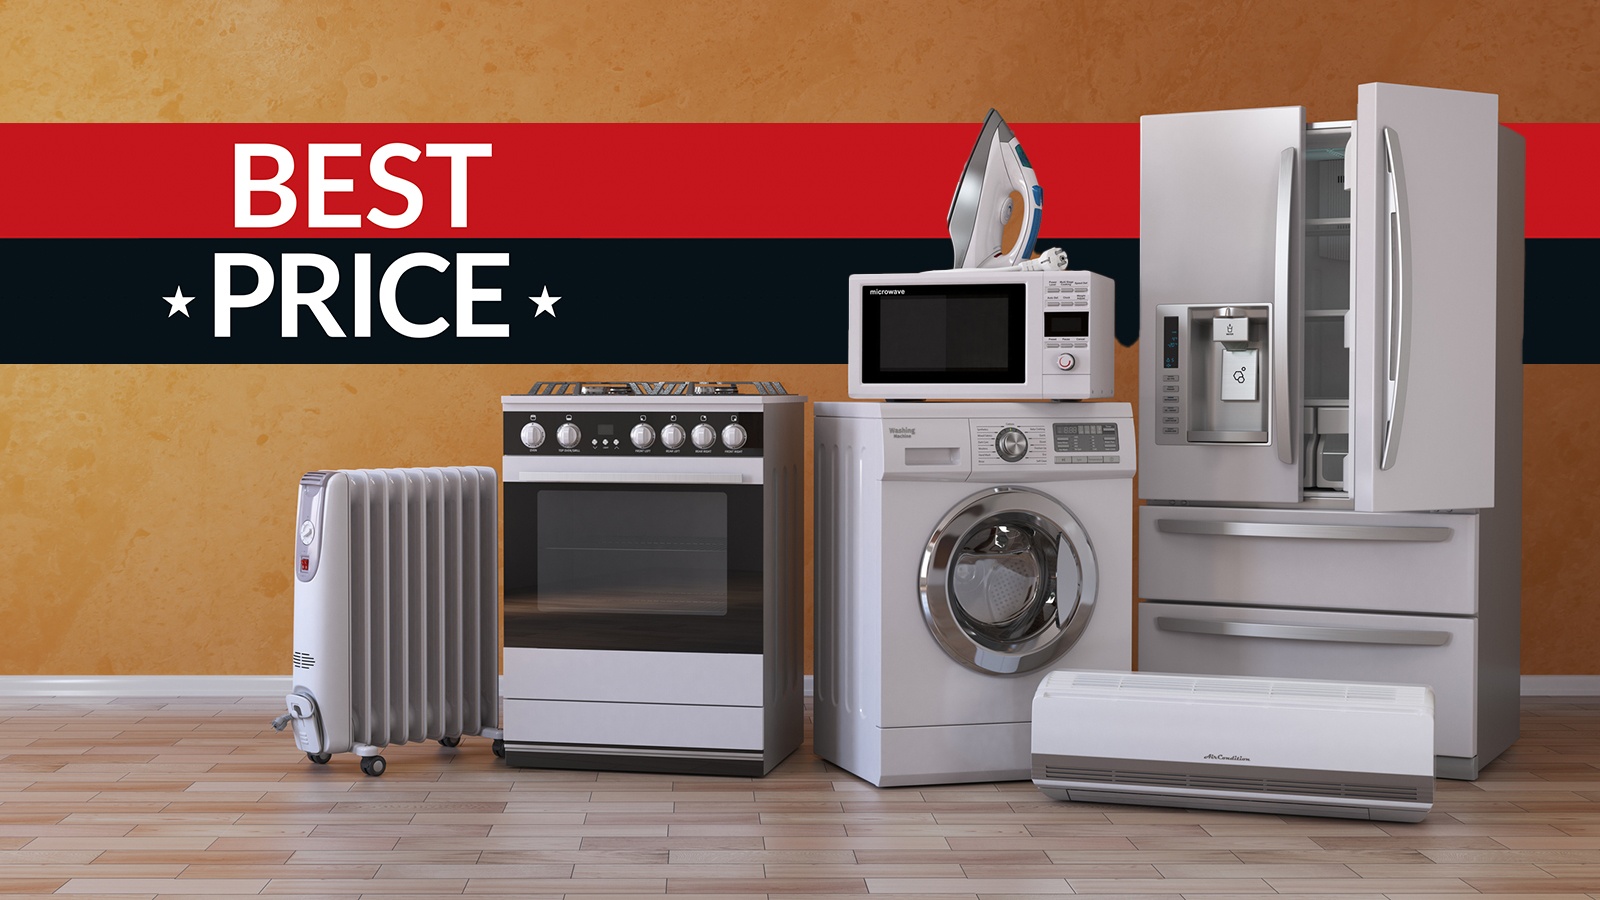 Great deals on Ovens and more